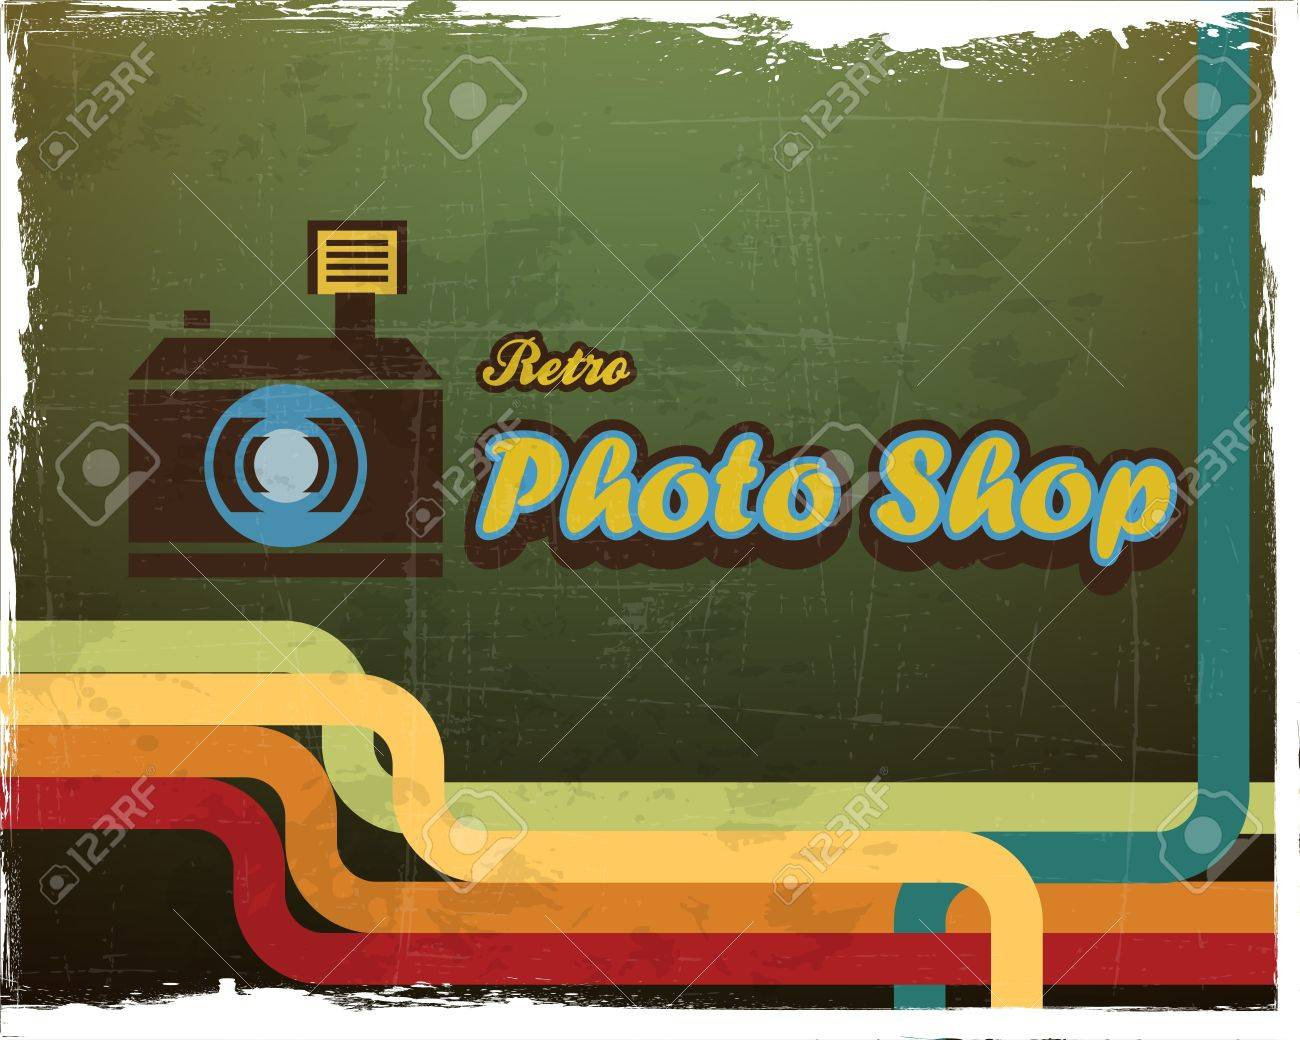 Grunge Camera Vector : Vintage poster with camera and grunge effect royalty free cliparts